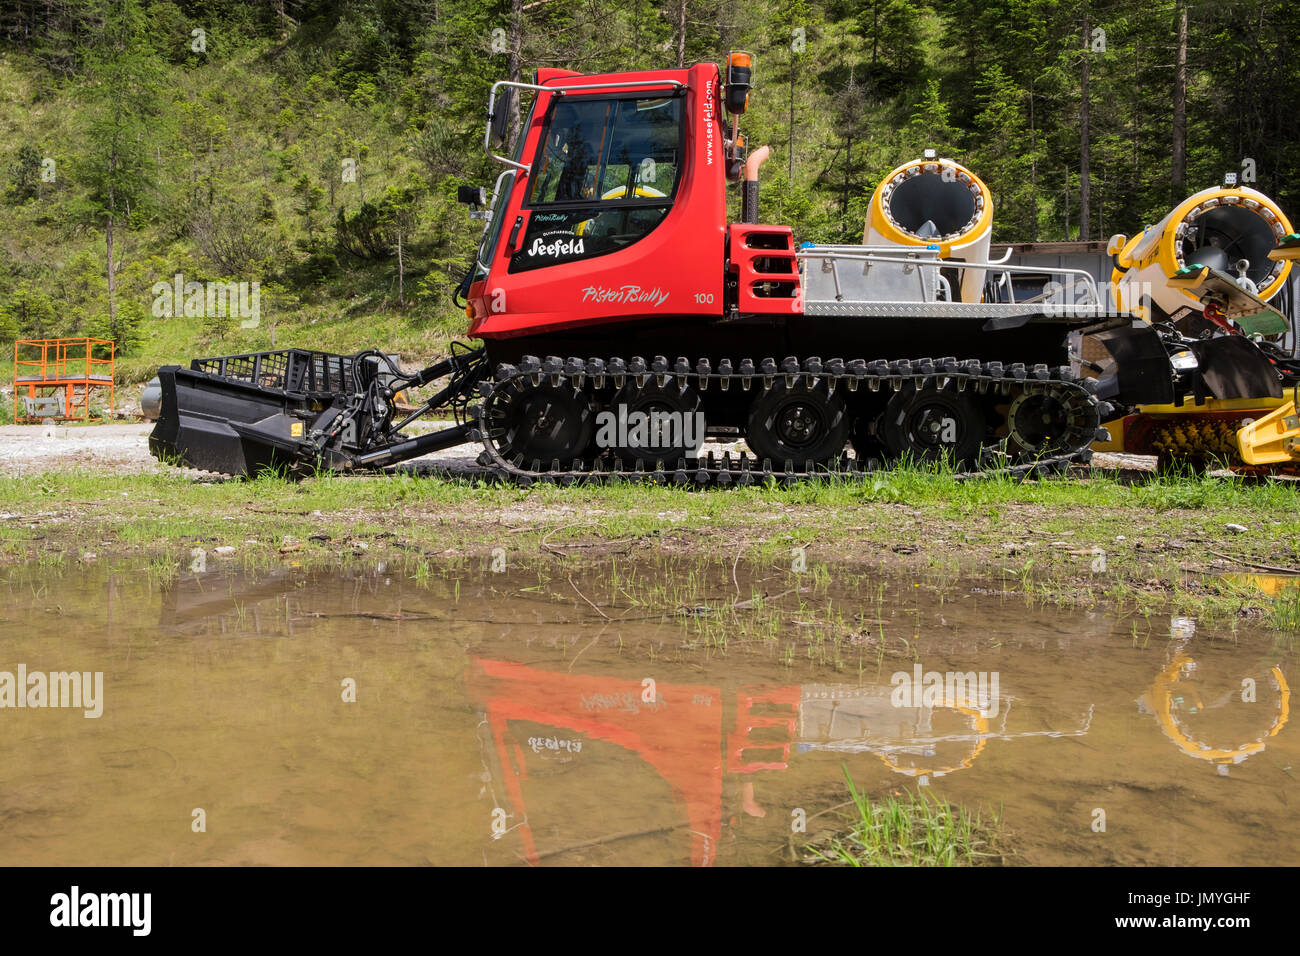 Tracked snowmobile Pisten Billy parked up for the summer in Weidach, Leutasch valley, Tyrol, Austria - Stock Image